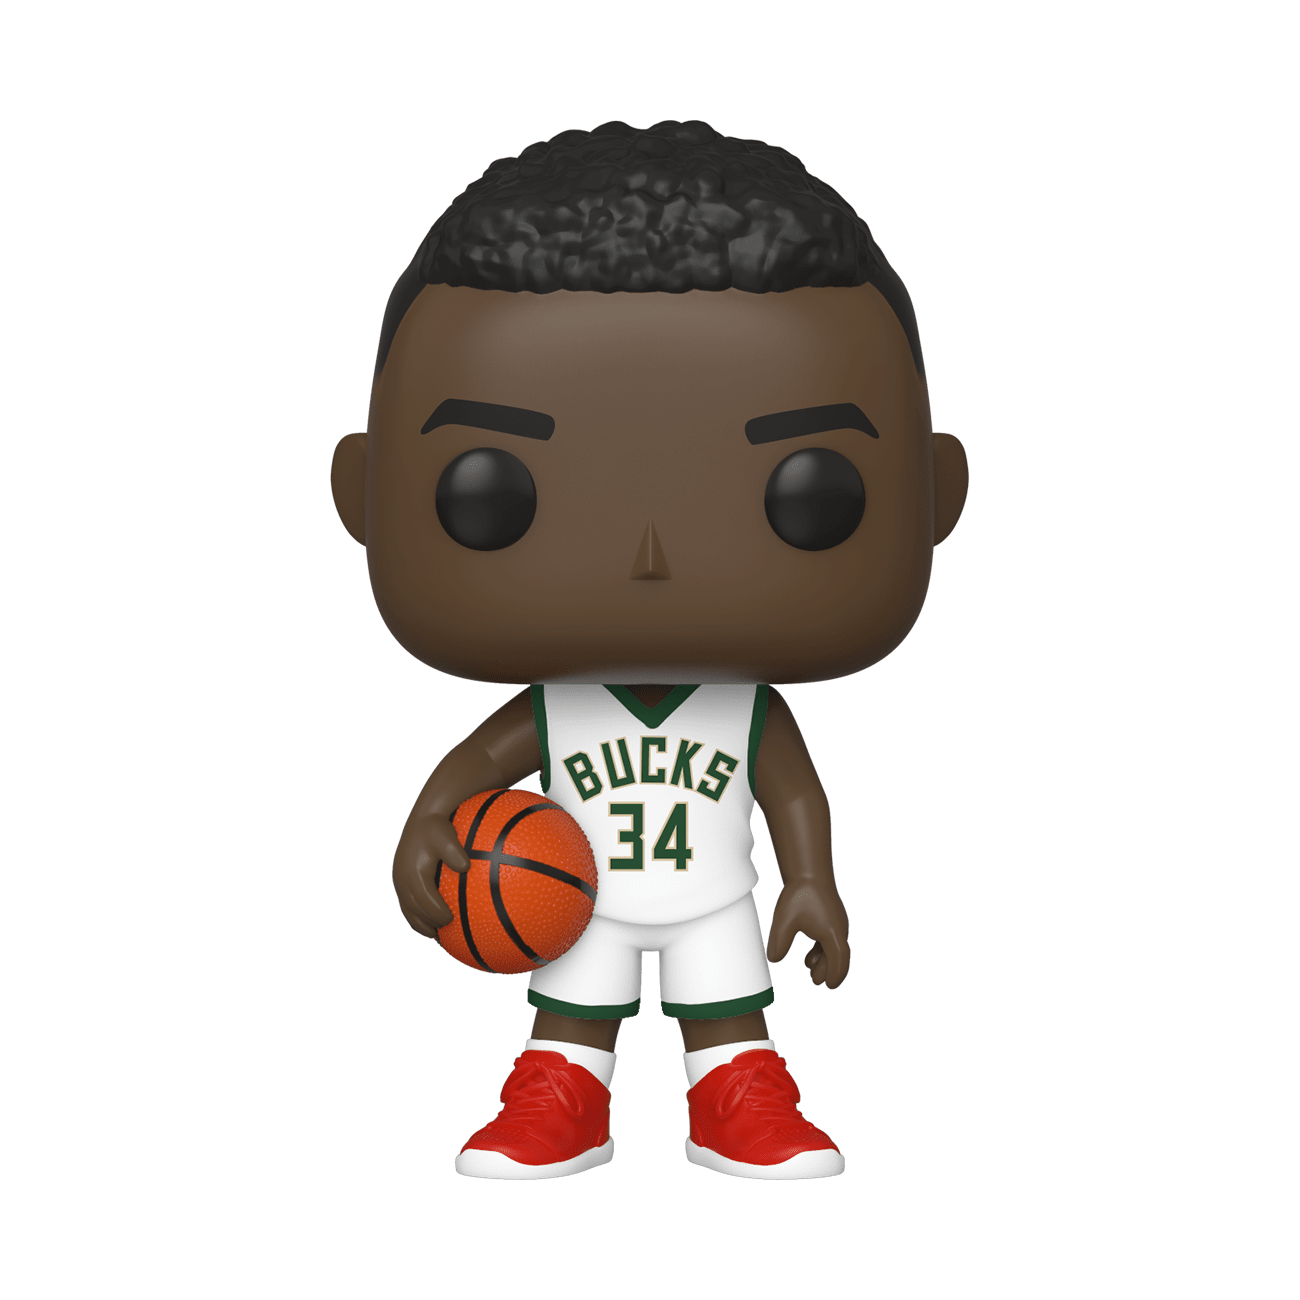 PRE-ORDER NBA: Bucks Giannis Antetokounmpo POP! Vinyl Figure